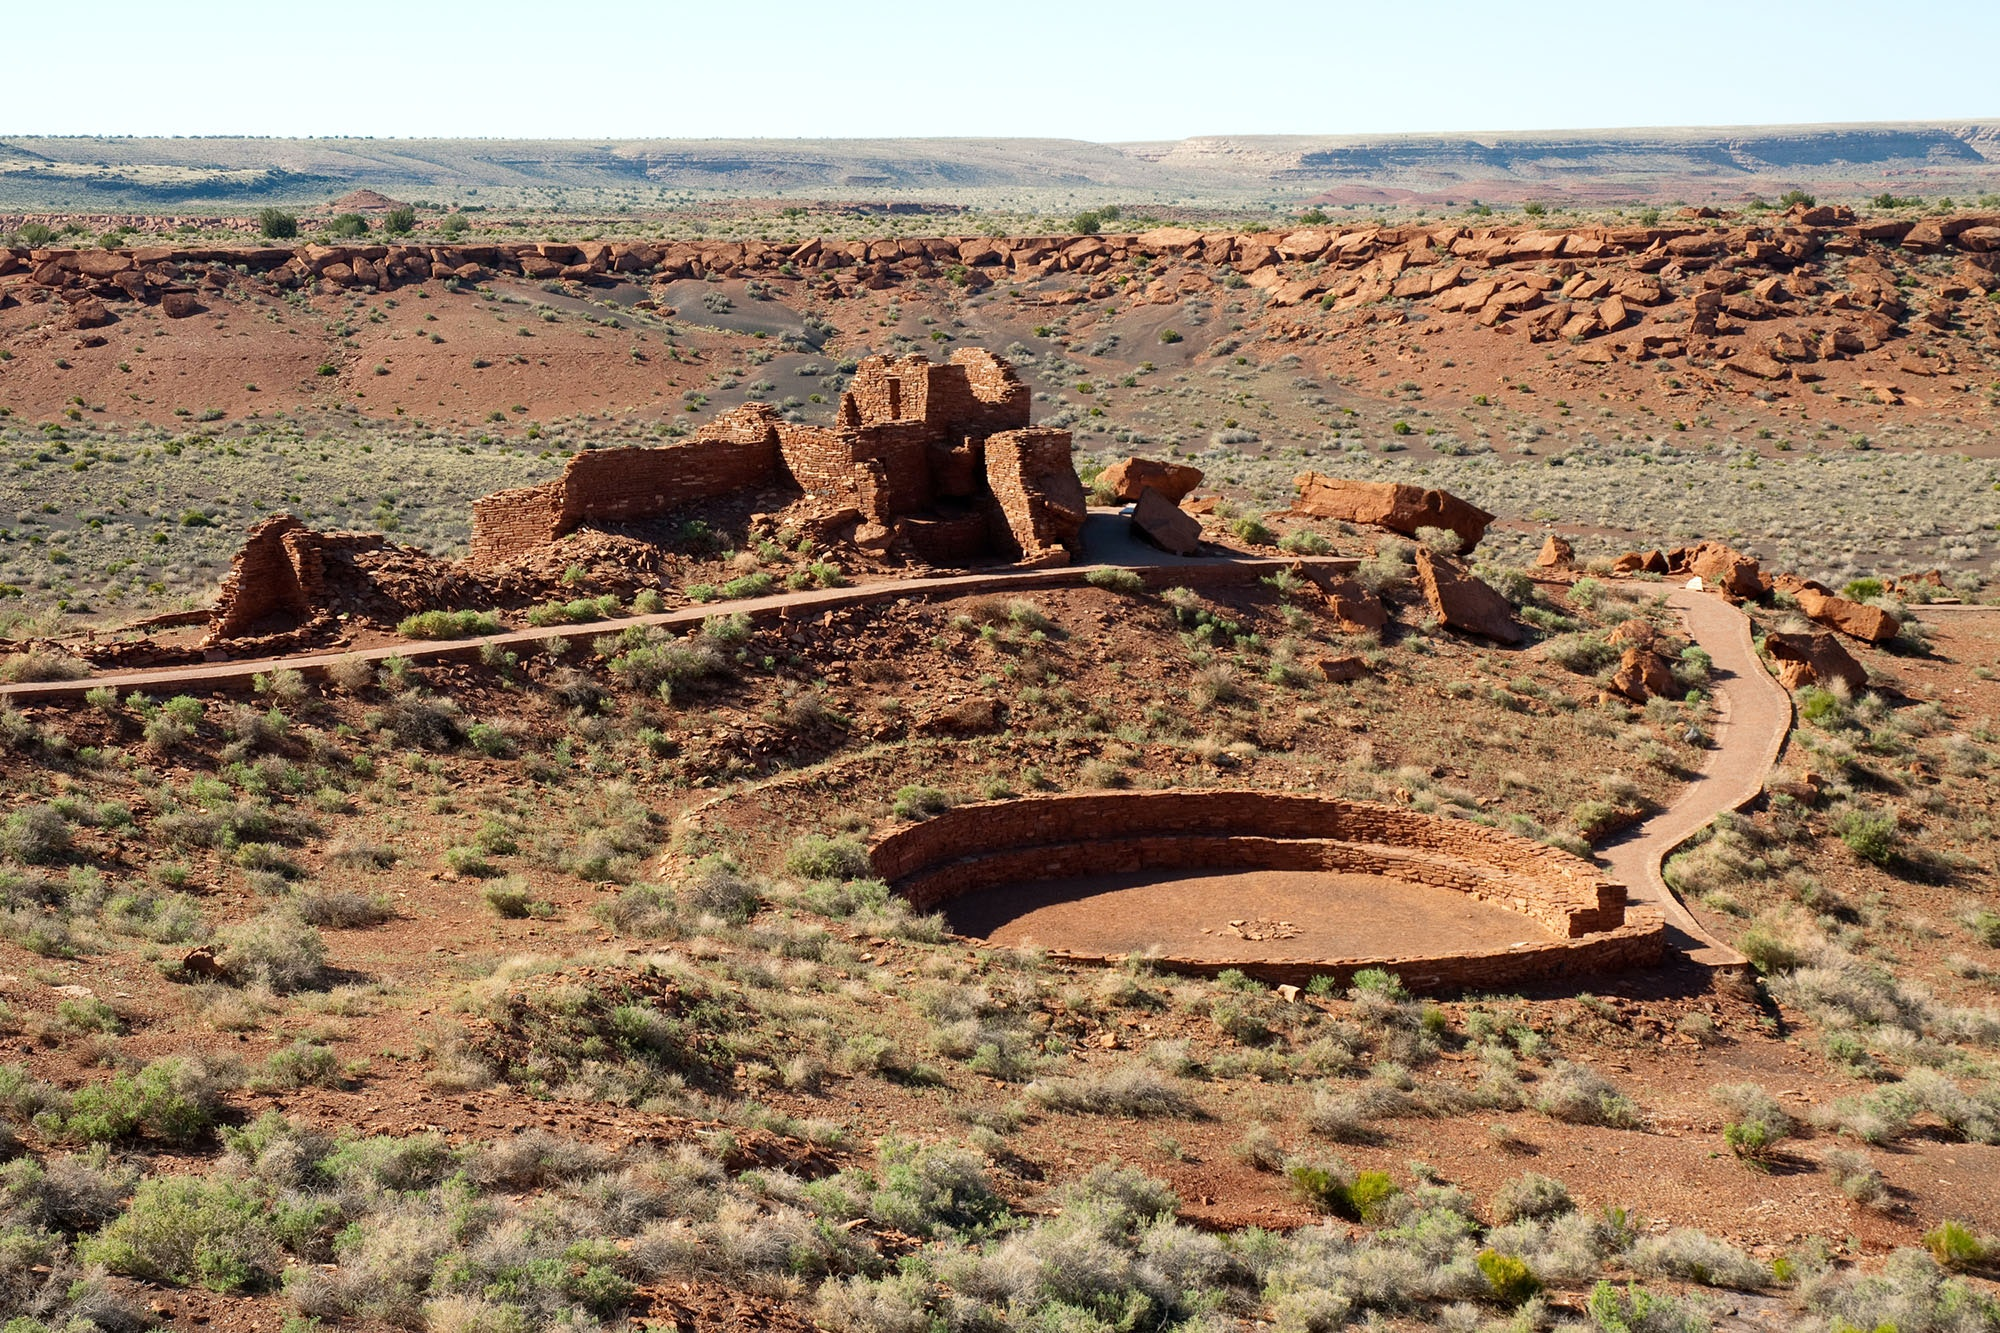 The Wupatki Pueblo is among the largest of the Colorado Plateau and consists of over 100 rooms and a ball court.